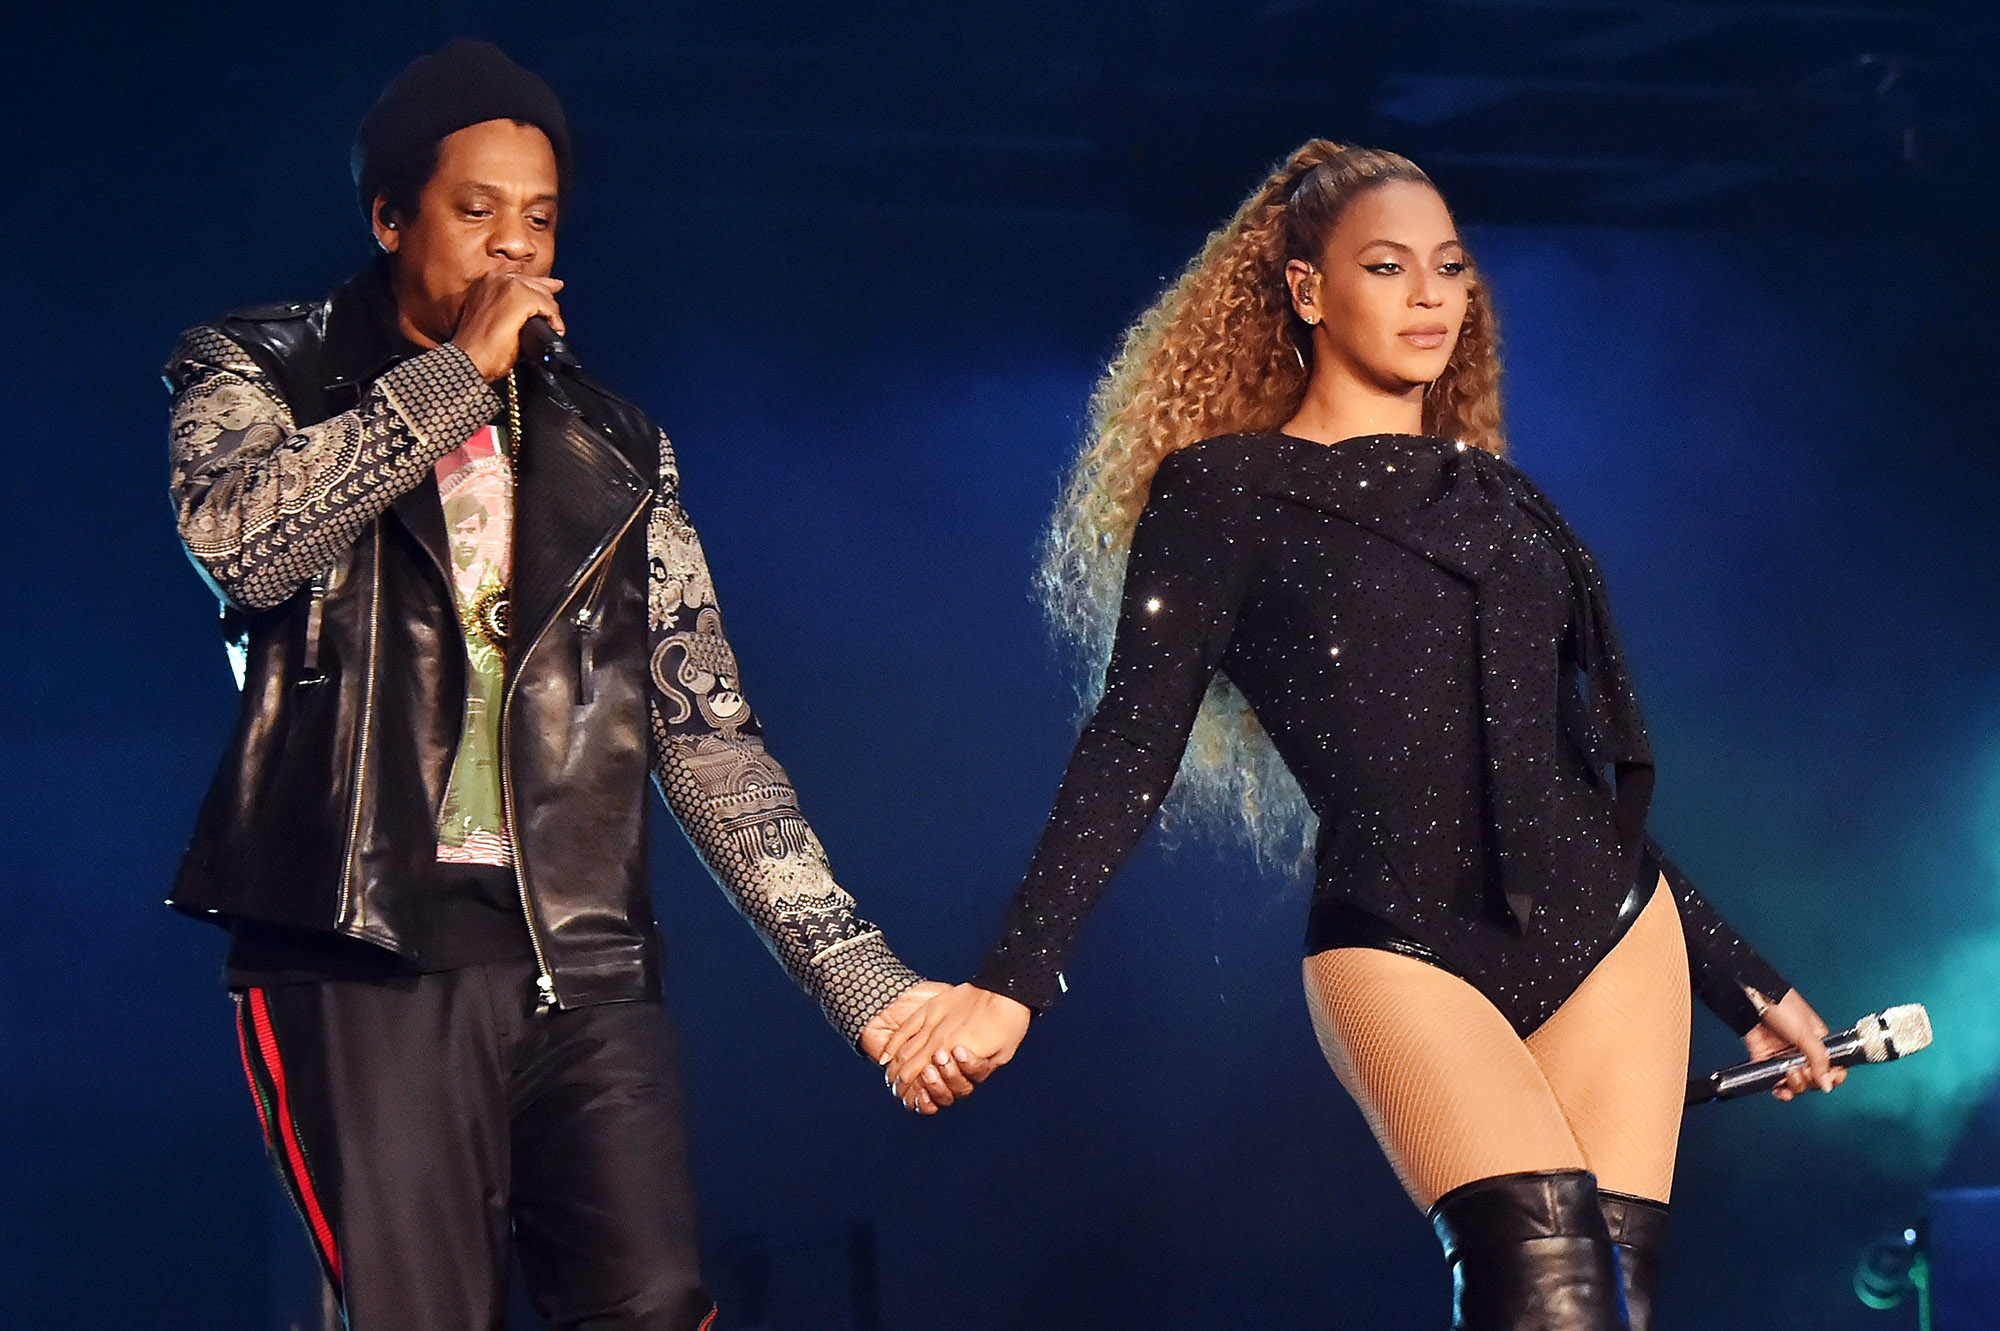 Beyoncé pictured with her husband, JAY-Z